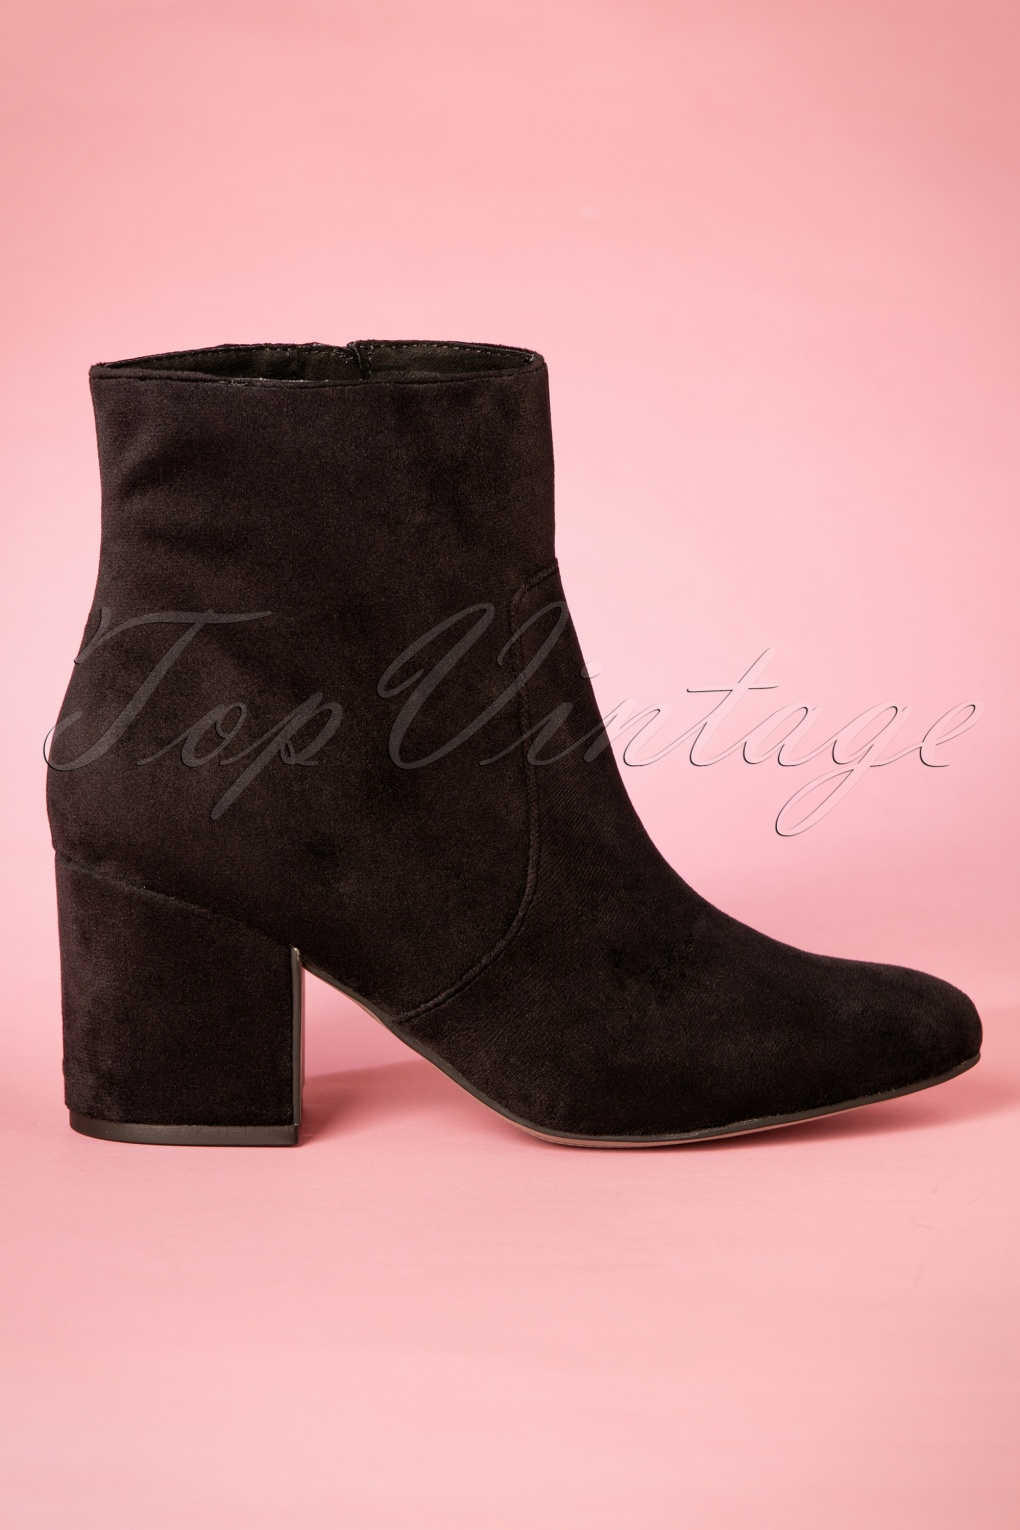 Retro Boots, Granny Boots, 70s Boots 60s Victoria Velvet Ankle Booties in Black £62.17 AT vintagedancer.com